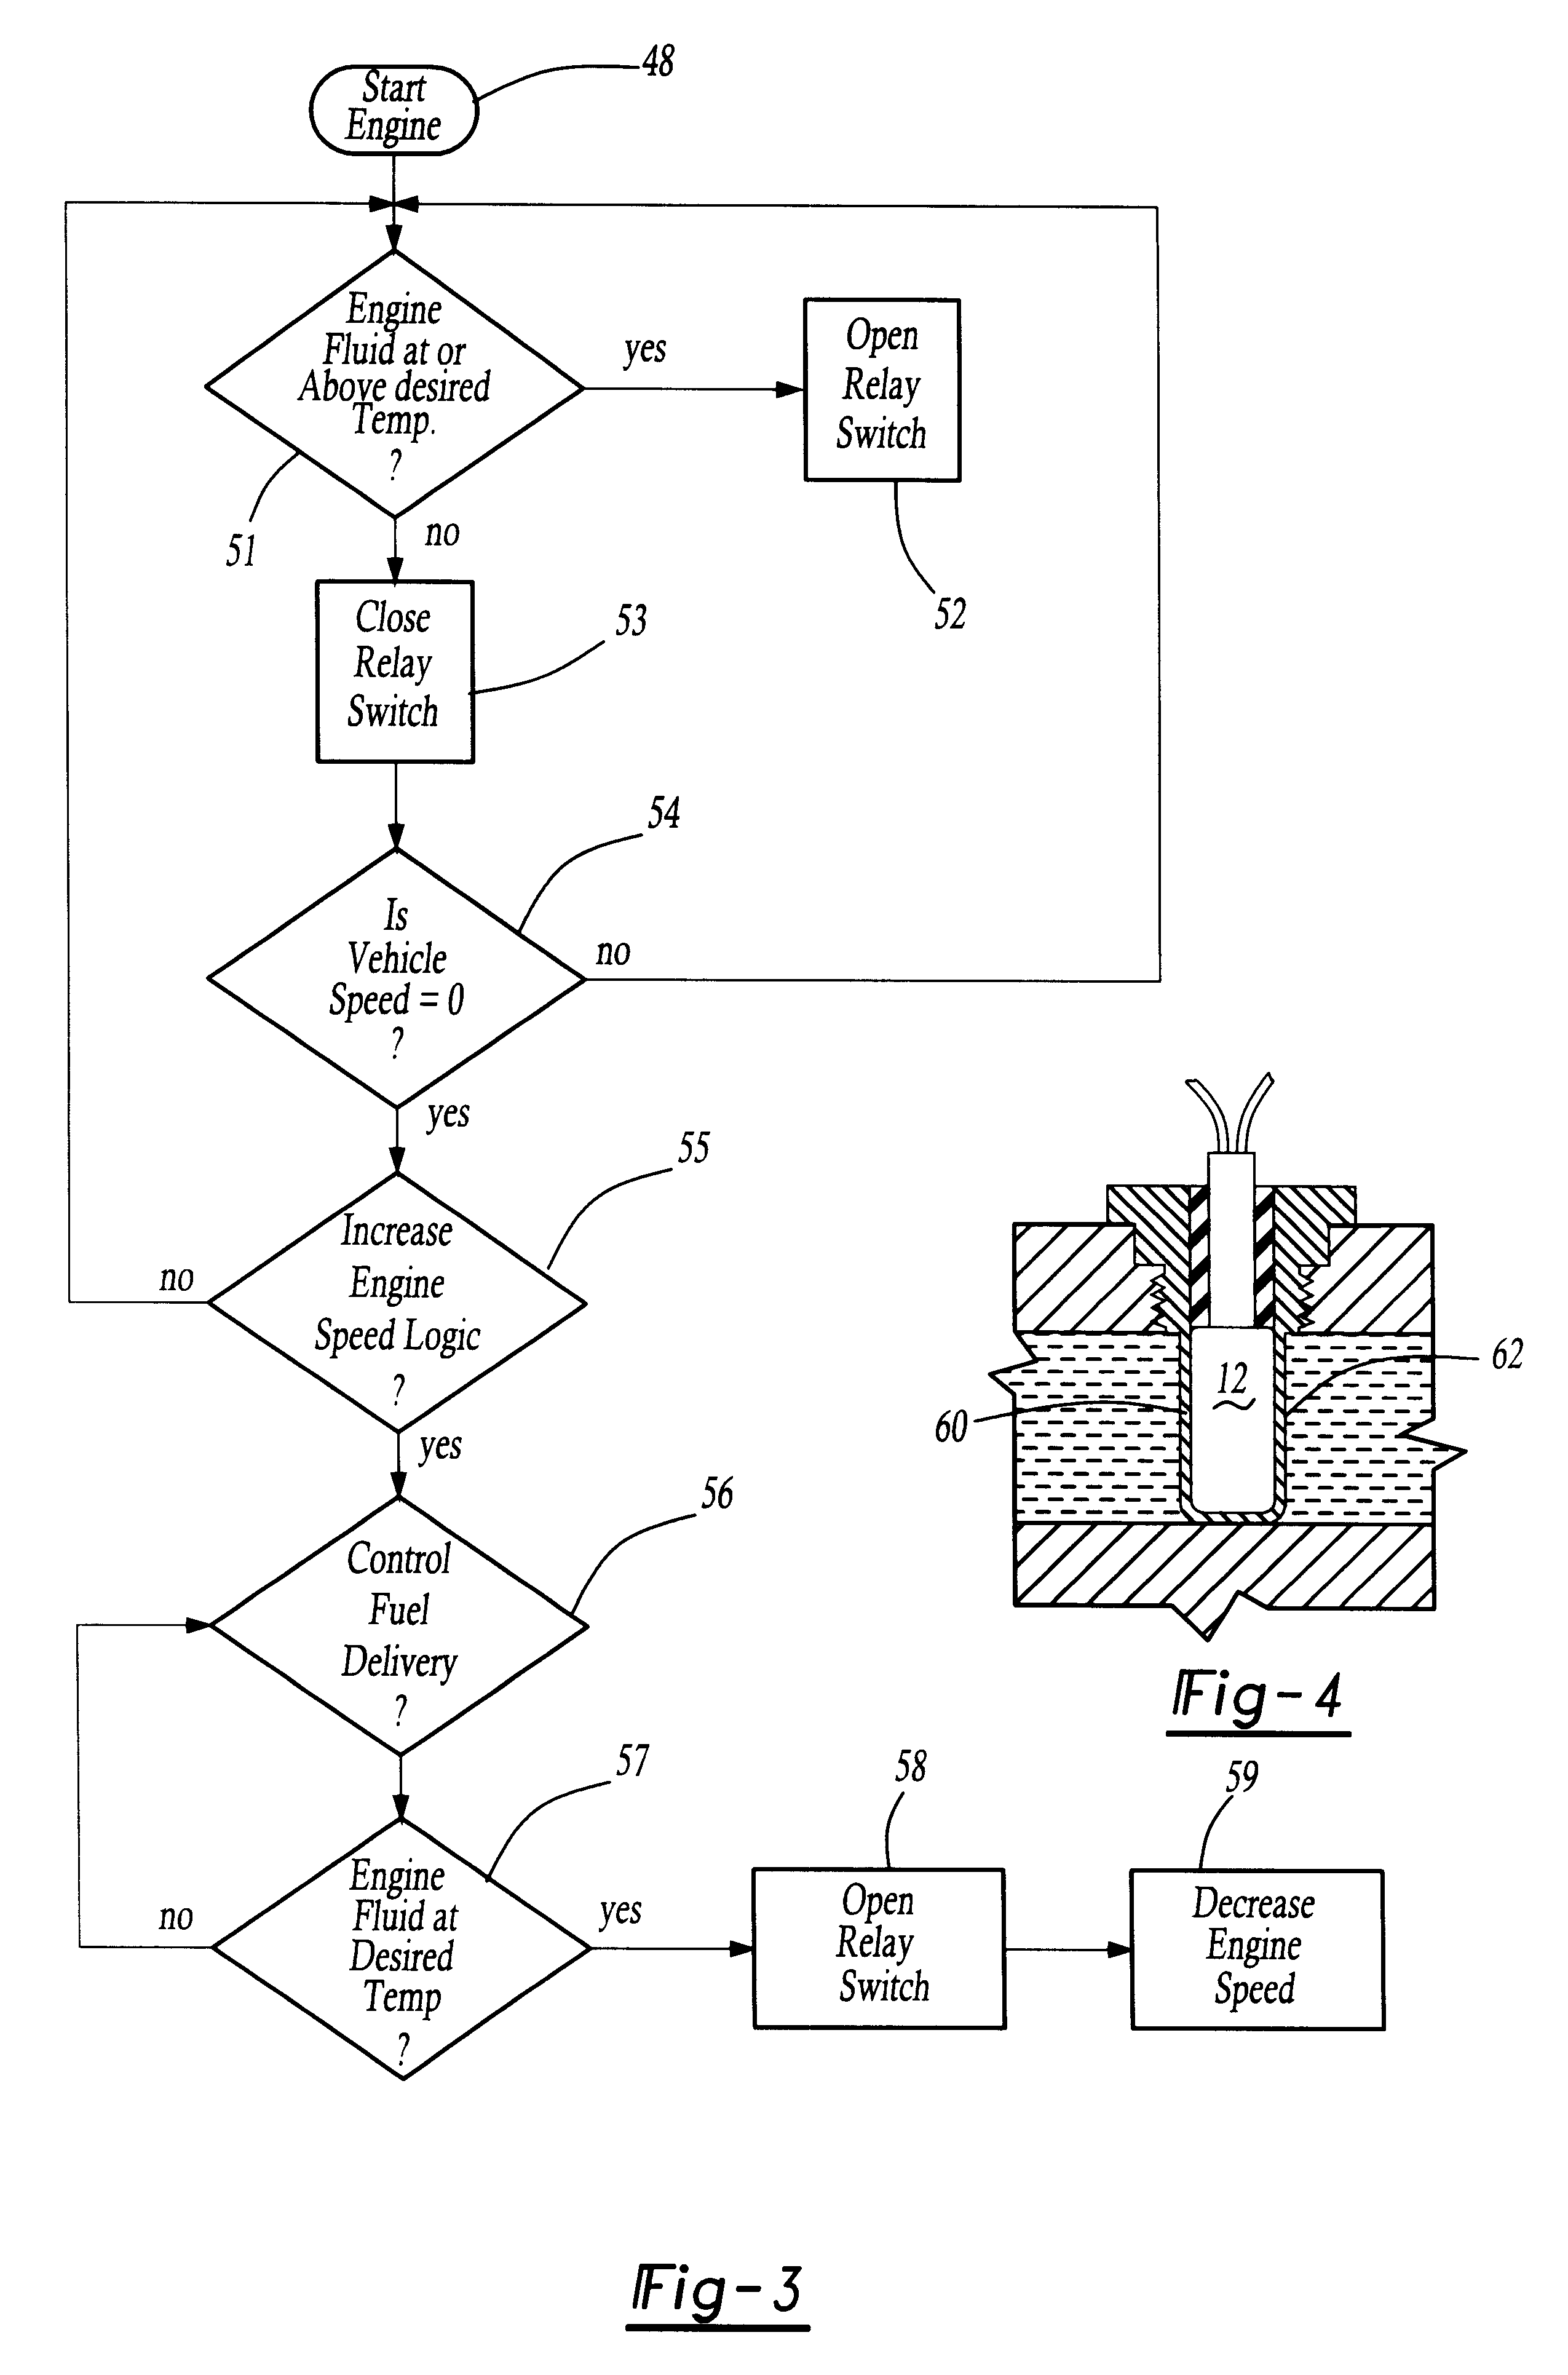 Brevet Us6196177 Electrical System For An Internal Combustion Engine Block Diagram The Diesel Has Patent Drawing